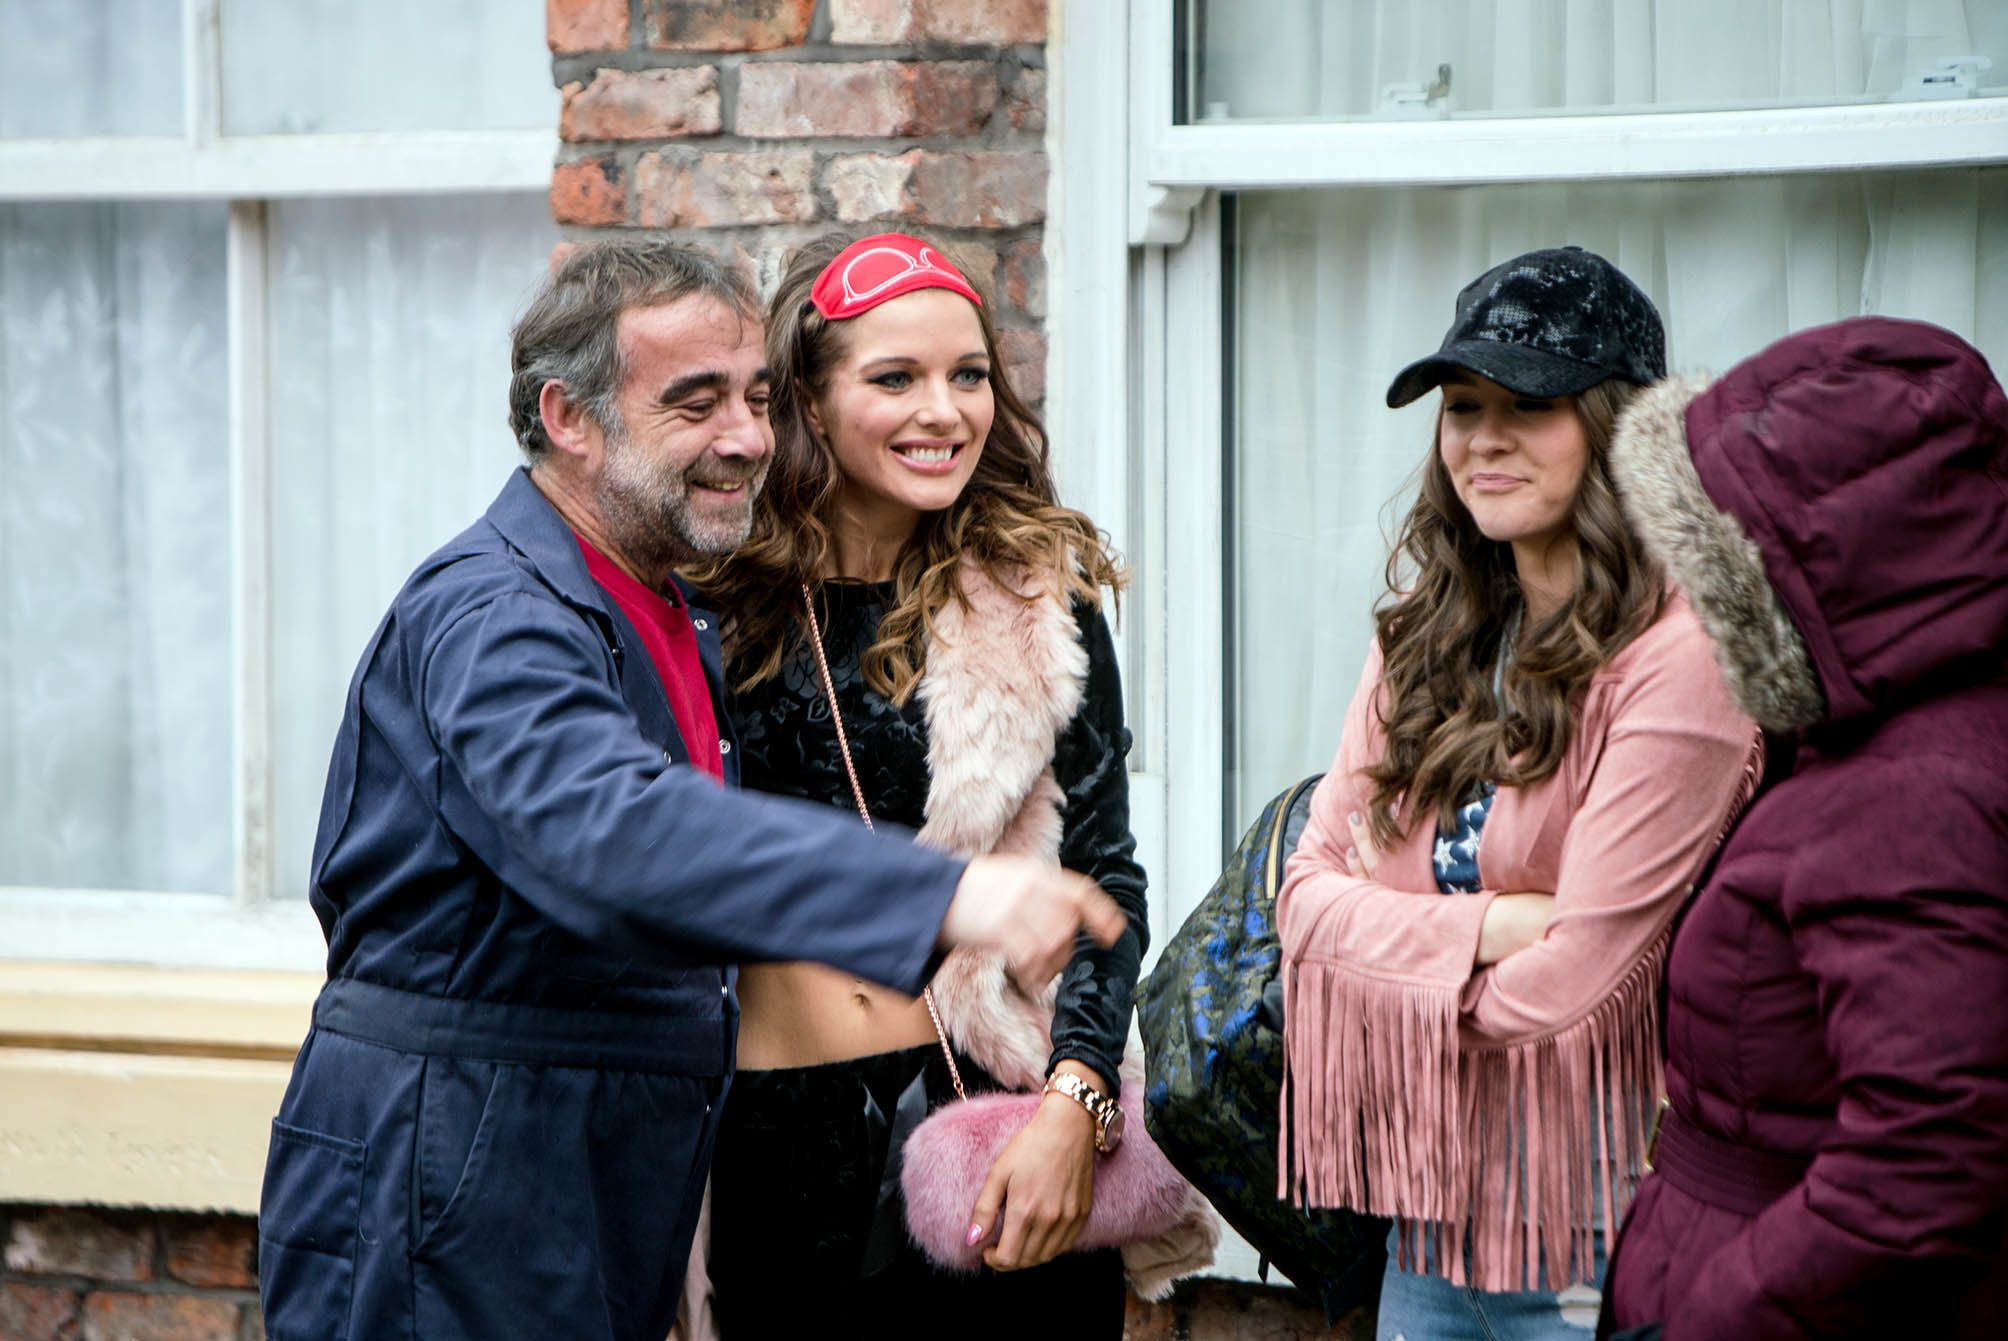 She's Back! 'Corrie' Bosses Reveal First Look At Helen Flanagan's Return As Rosie